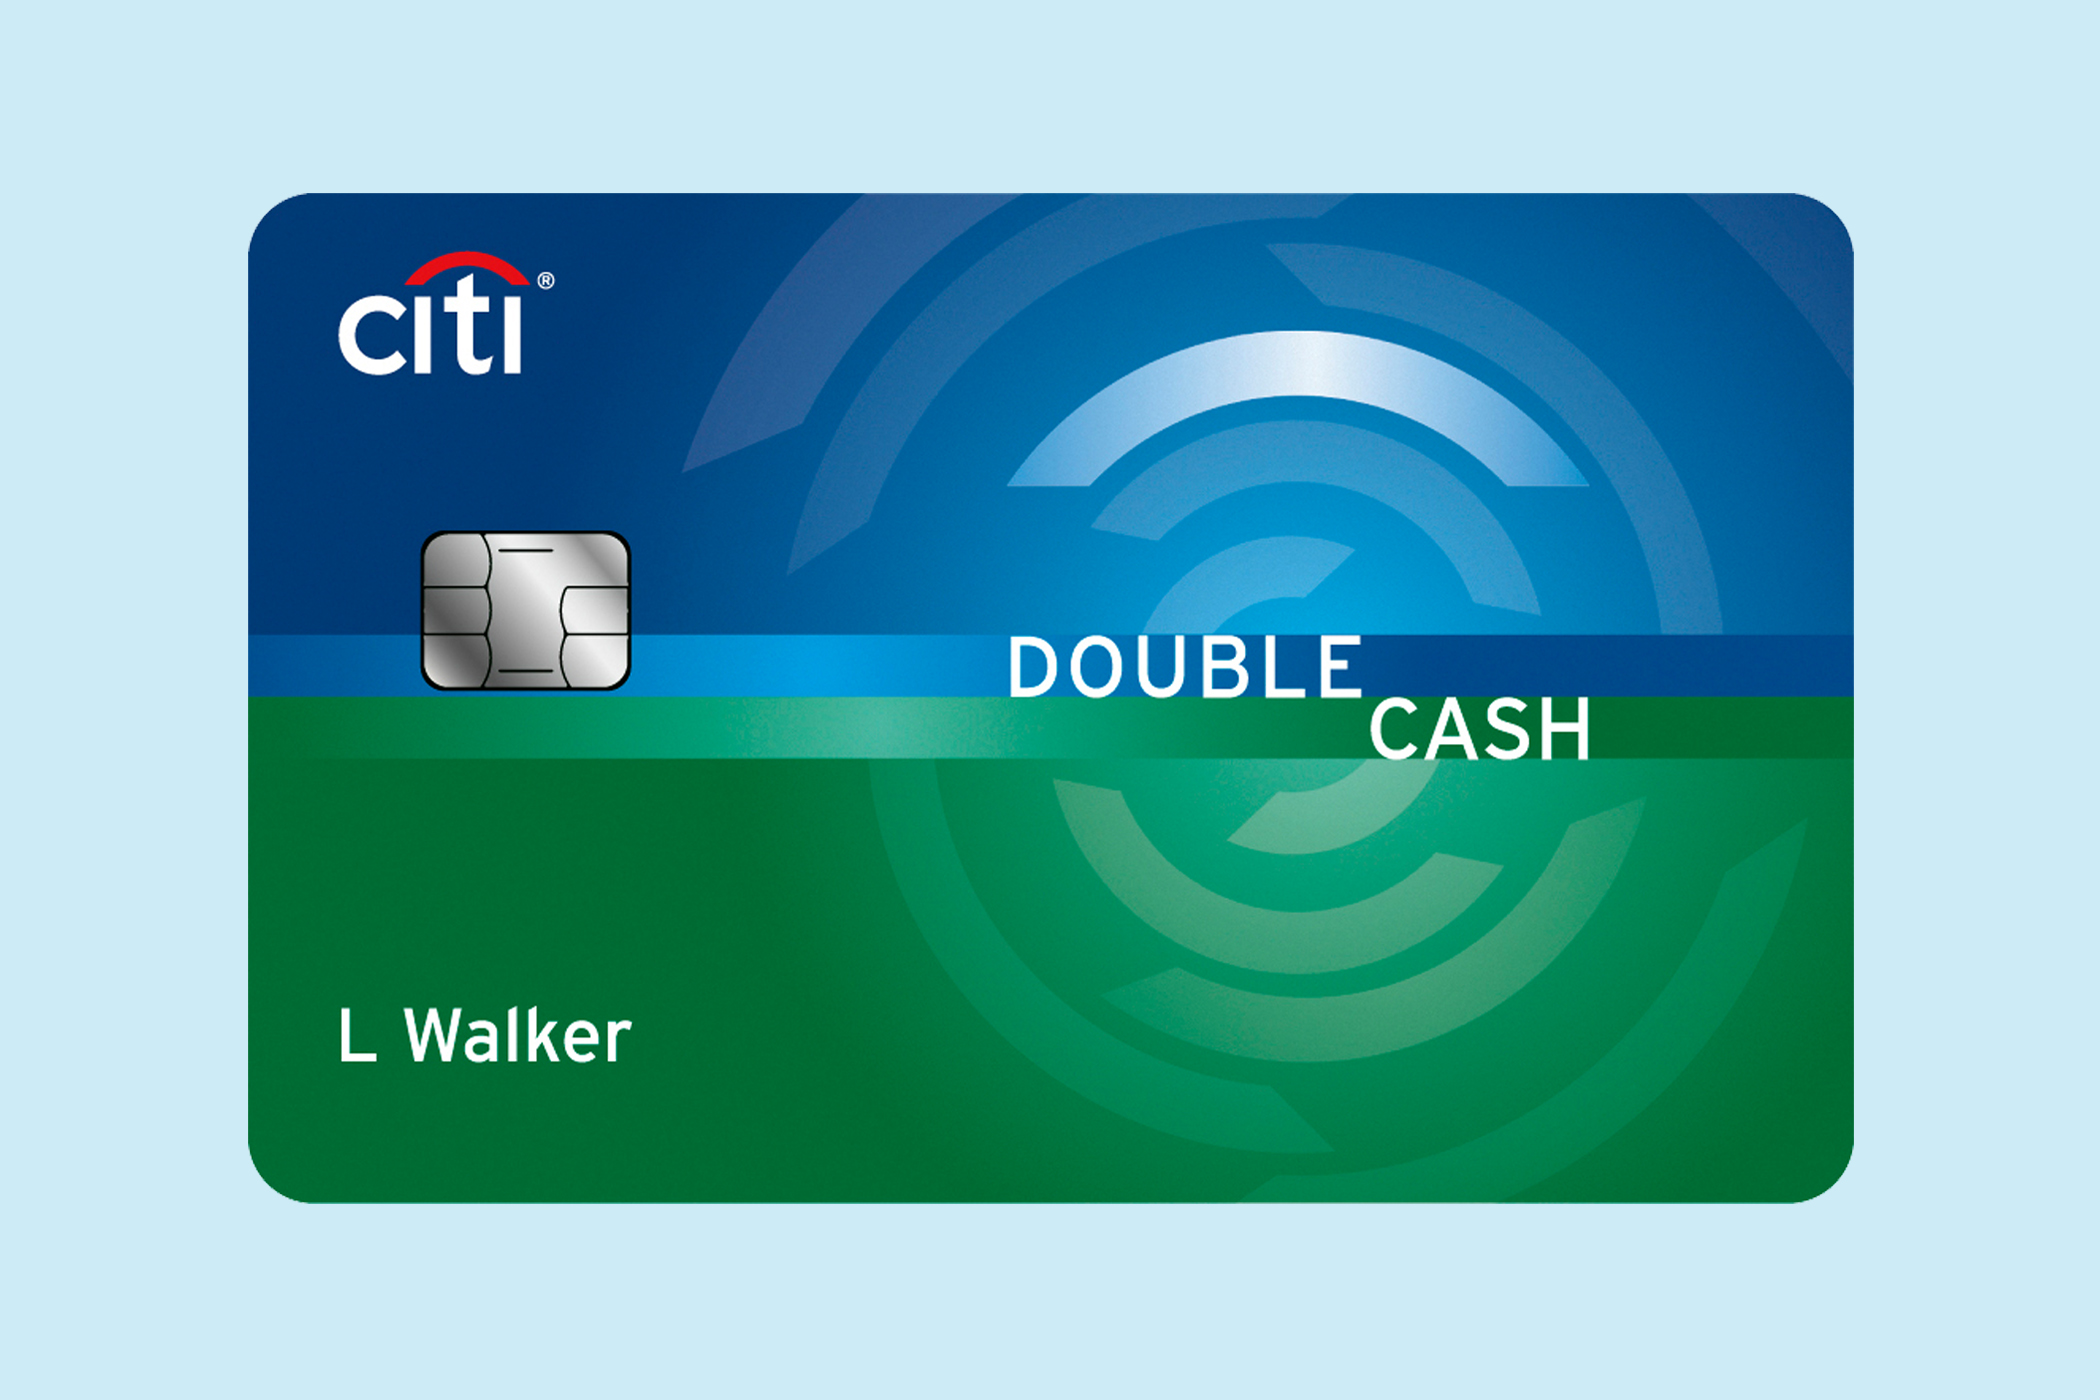 Citibank Credit Card: Should I Get the Citi Double Cash Card? Money